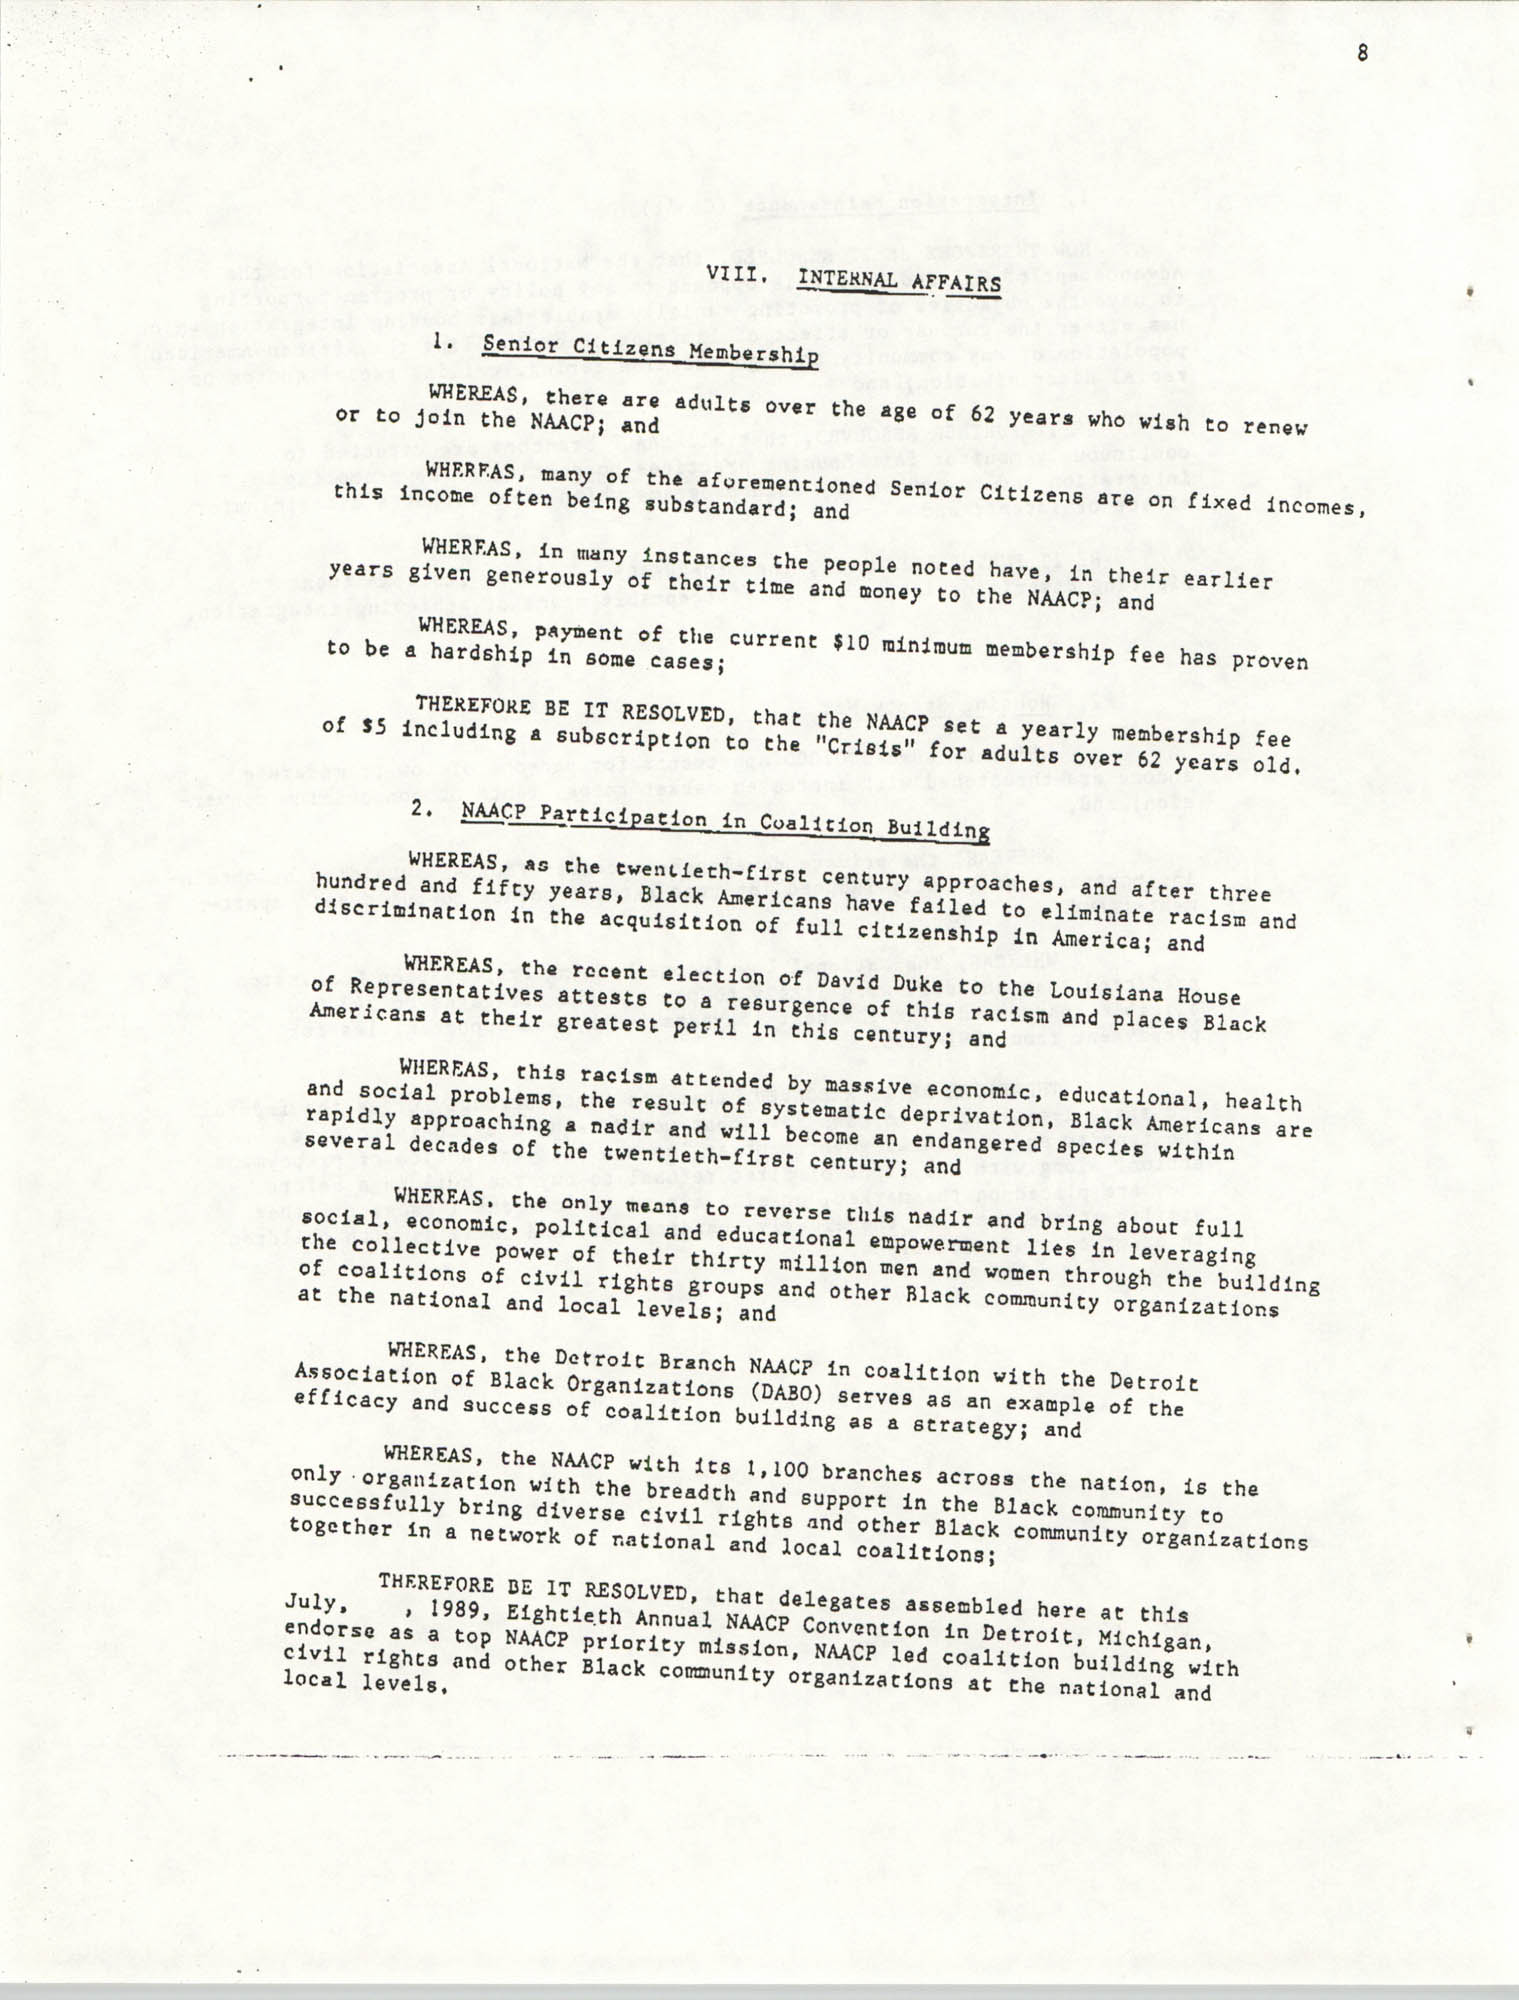 Resolutions Submitted Under Article X, Section 2 of the Constitution of the NAACP, Page 8